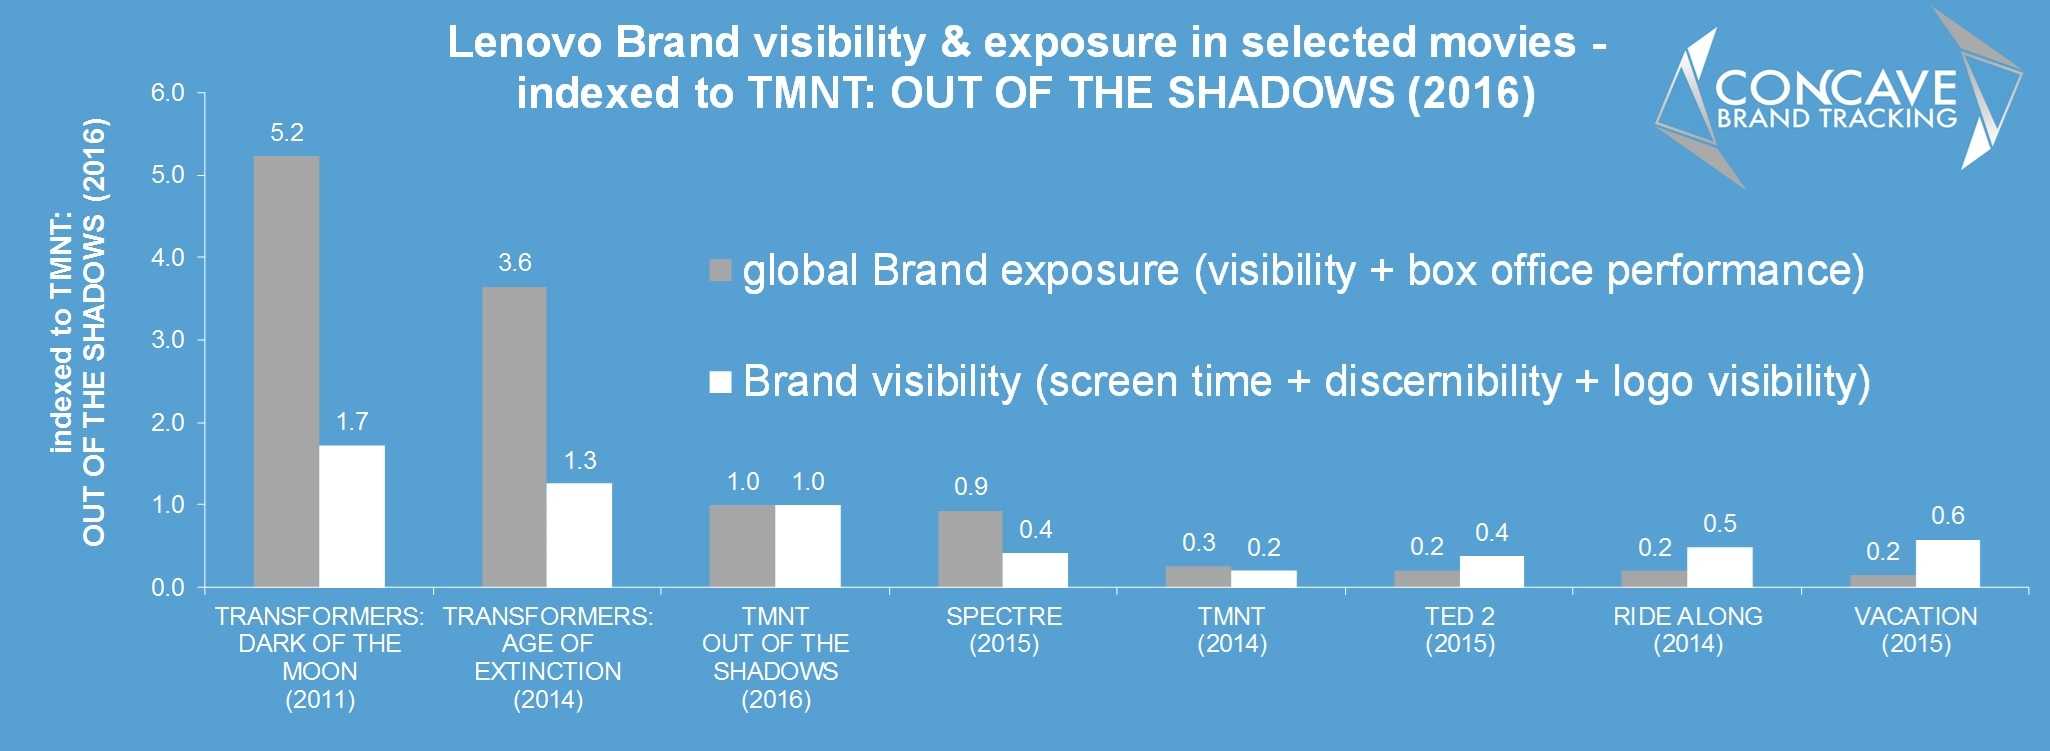 teenage mutant ninja turtles TMNT out of the shadows Brand branding product placement concave brand tracking lenovo